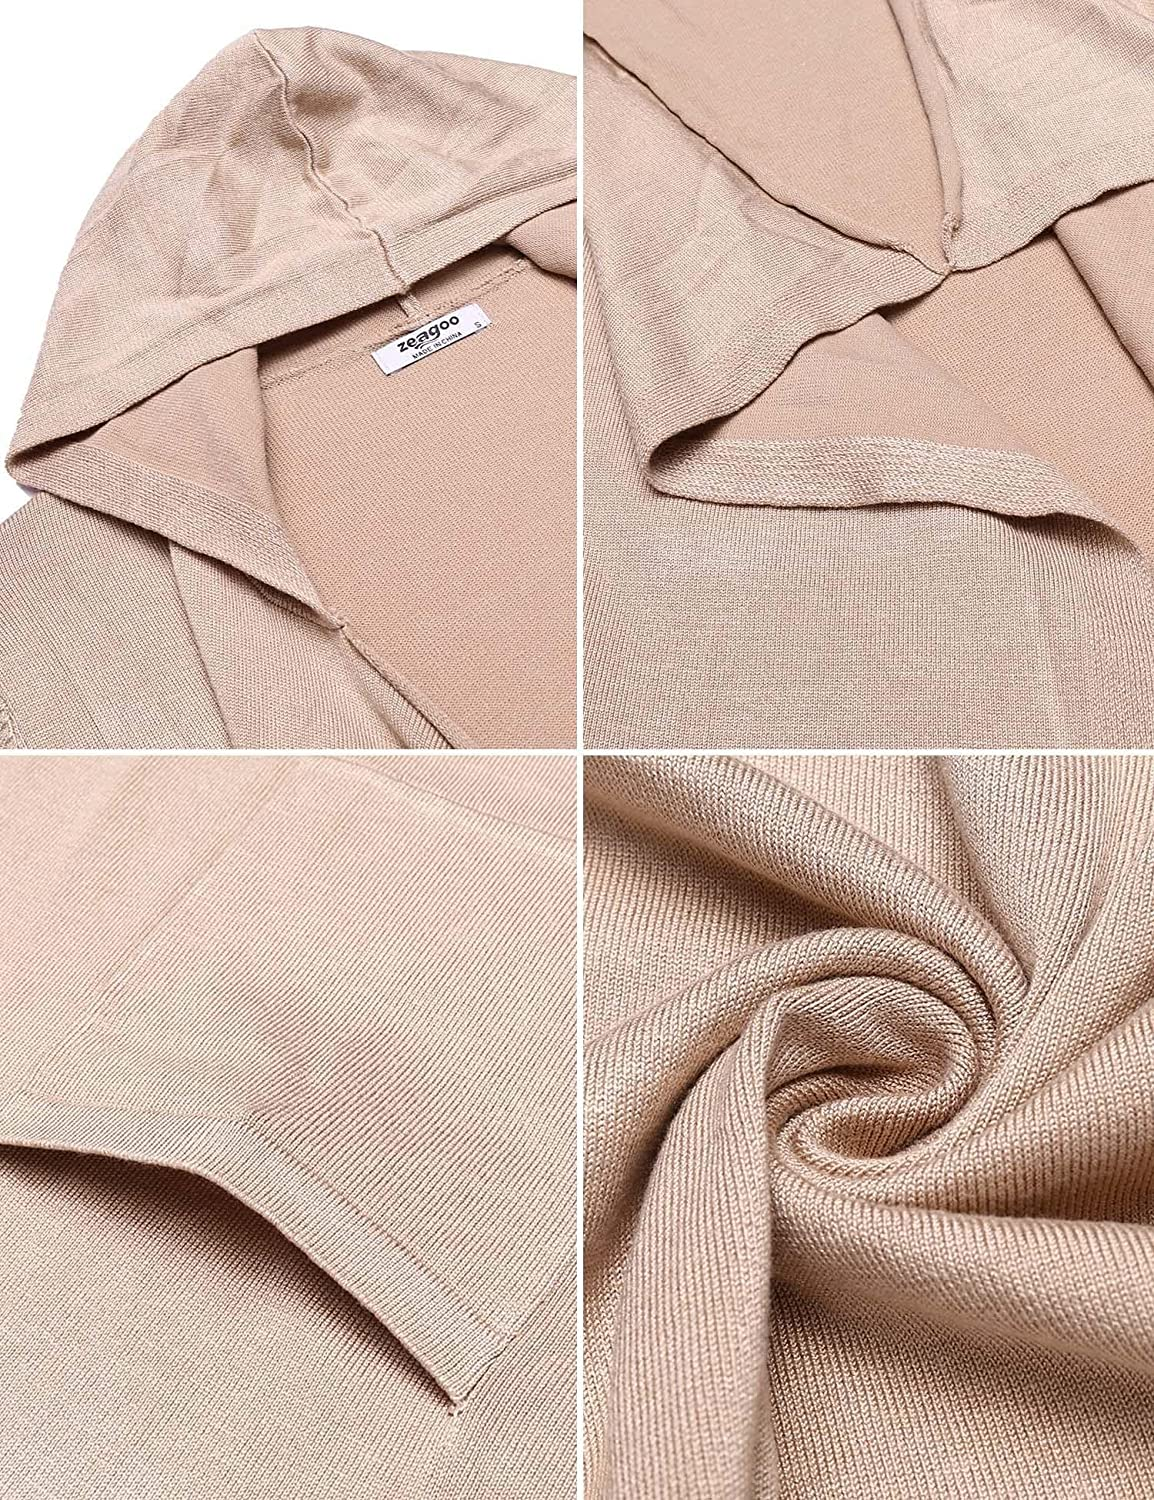 eda43f76e9 Zeagoo Women s Hooded Long Sleeve Draped Open Front Knit Sweater Cardigan  with Pockets at Amazon Women s Clothing store